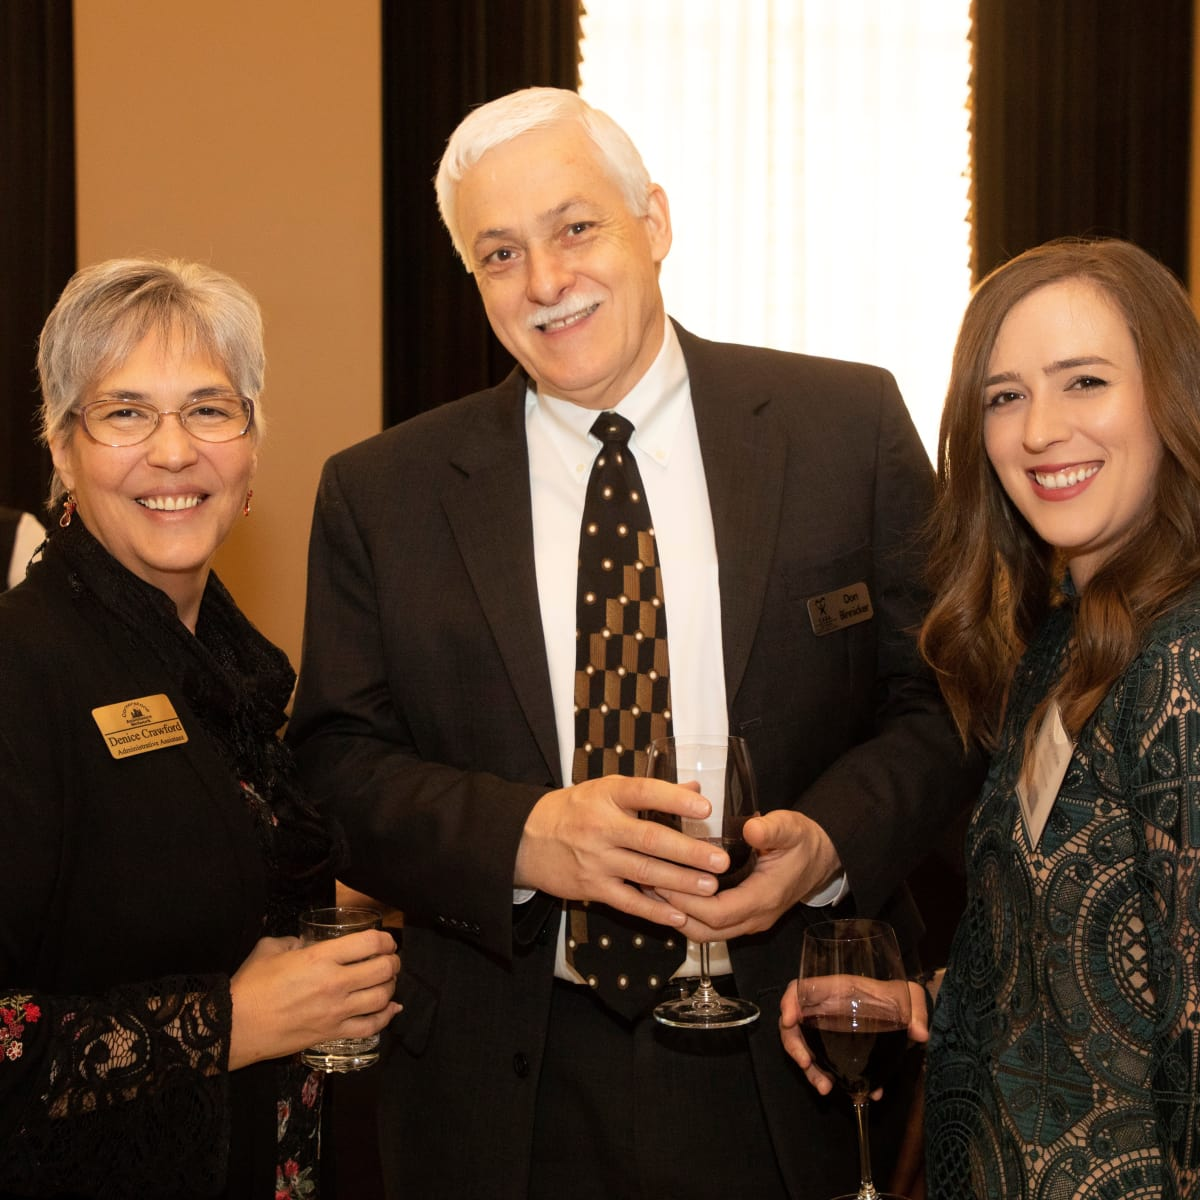 North Texas Community Foundation, Rose BradshawDenice Crawford, Don Binnicker, Catelyn Devlin